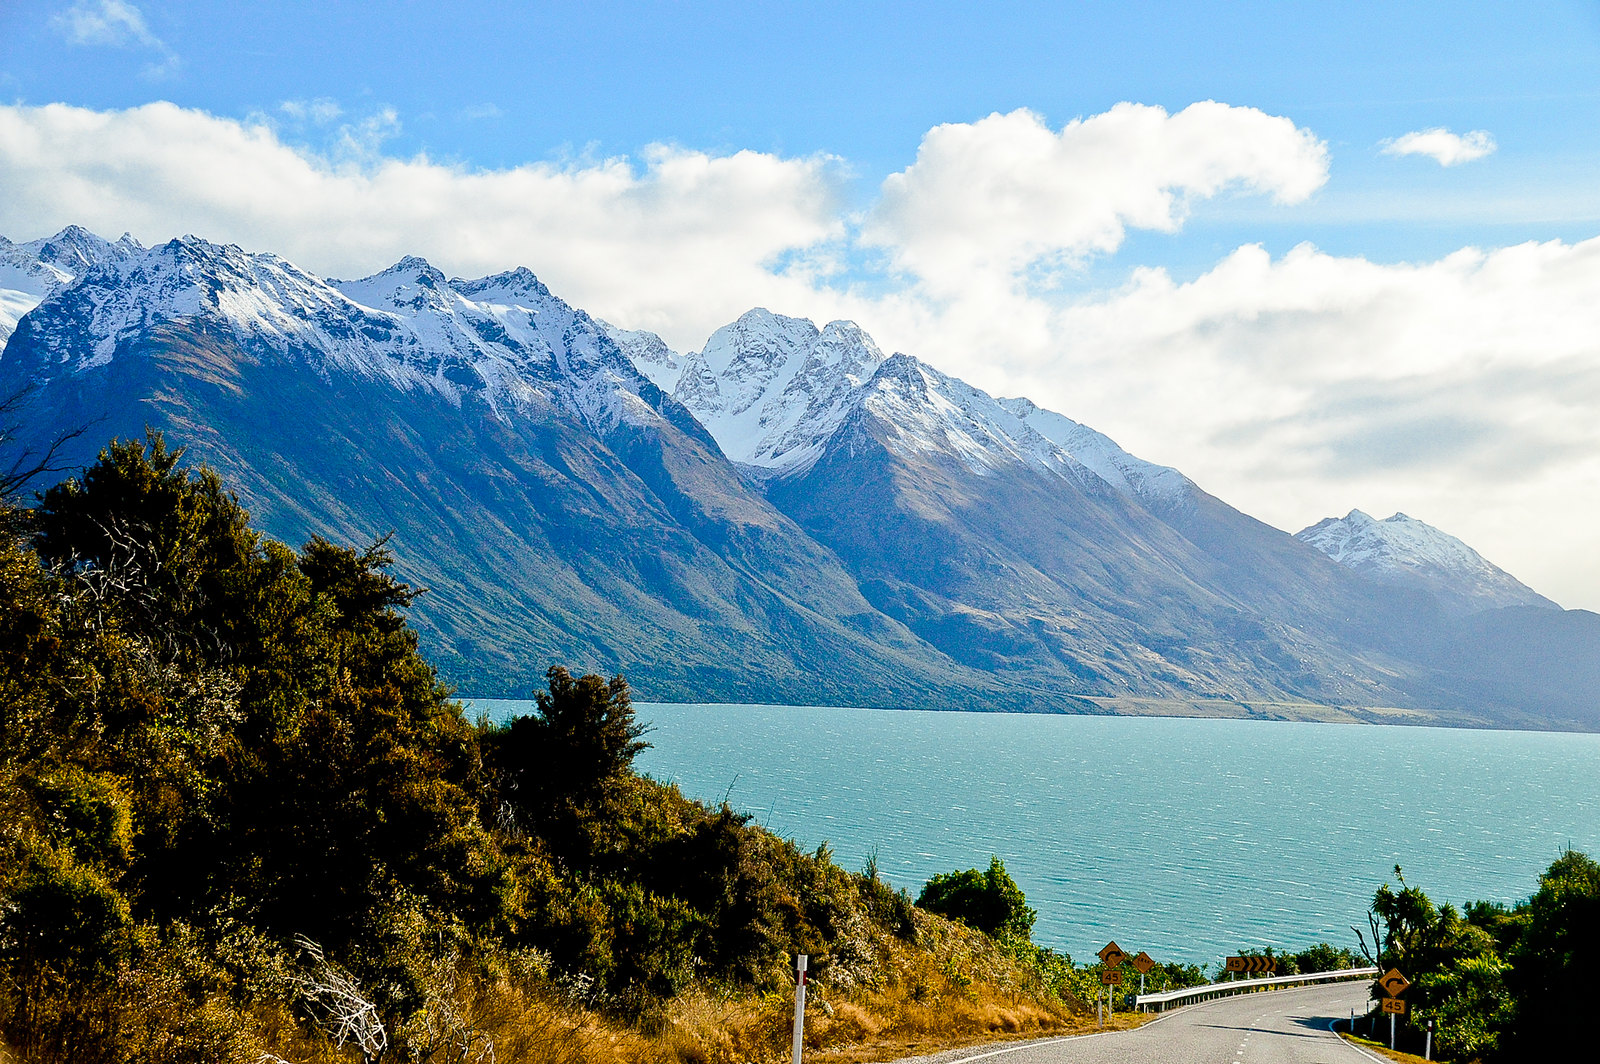 The Journey to Glenorchy (Or Middle-Earth, if you've watched Lord of the Rings)